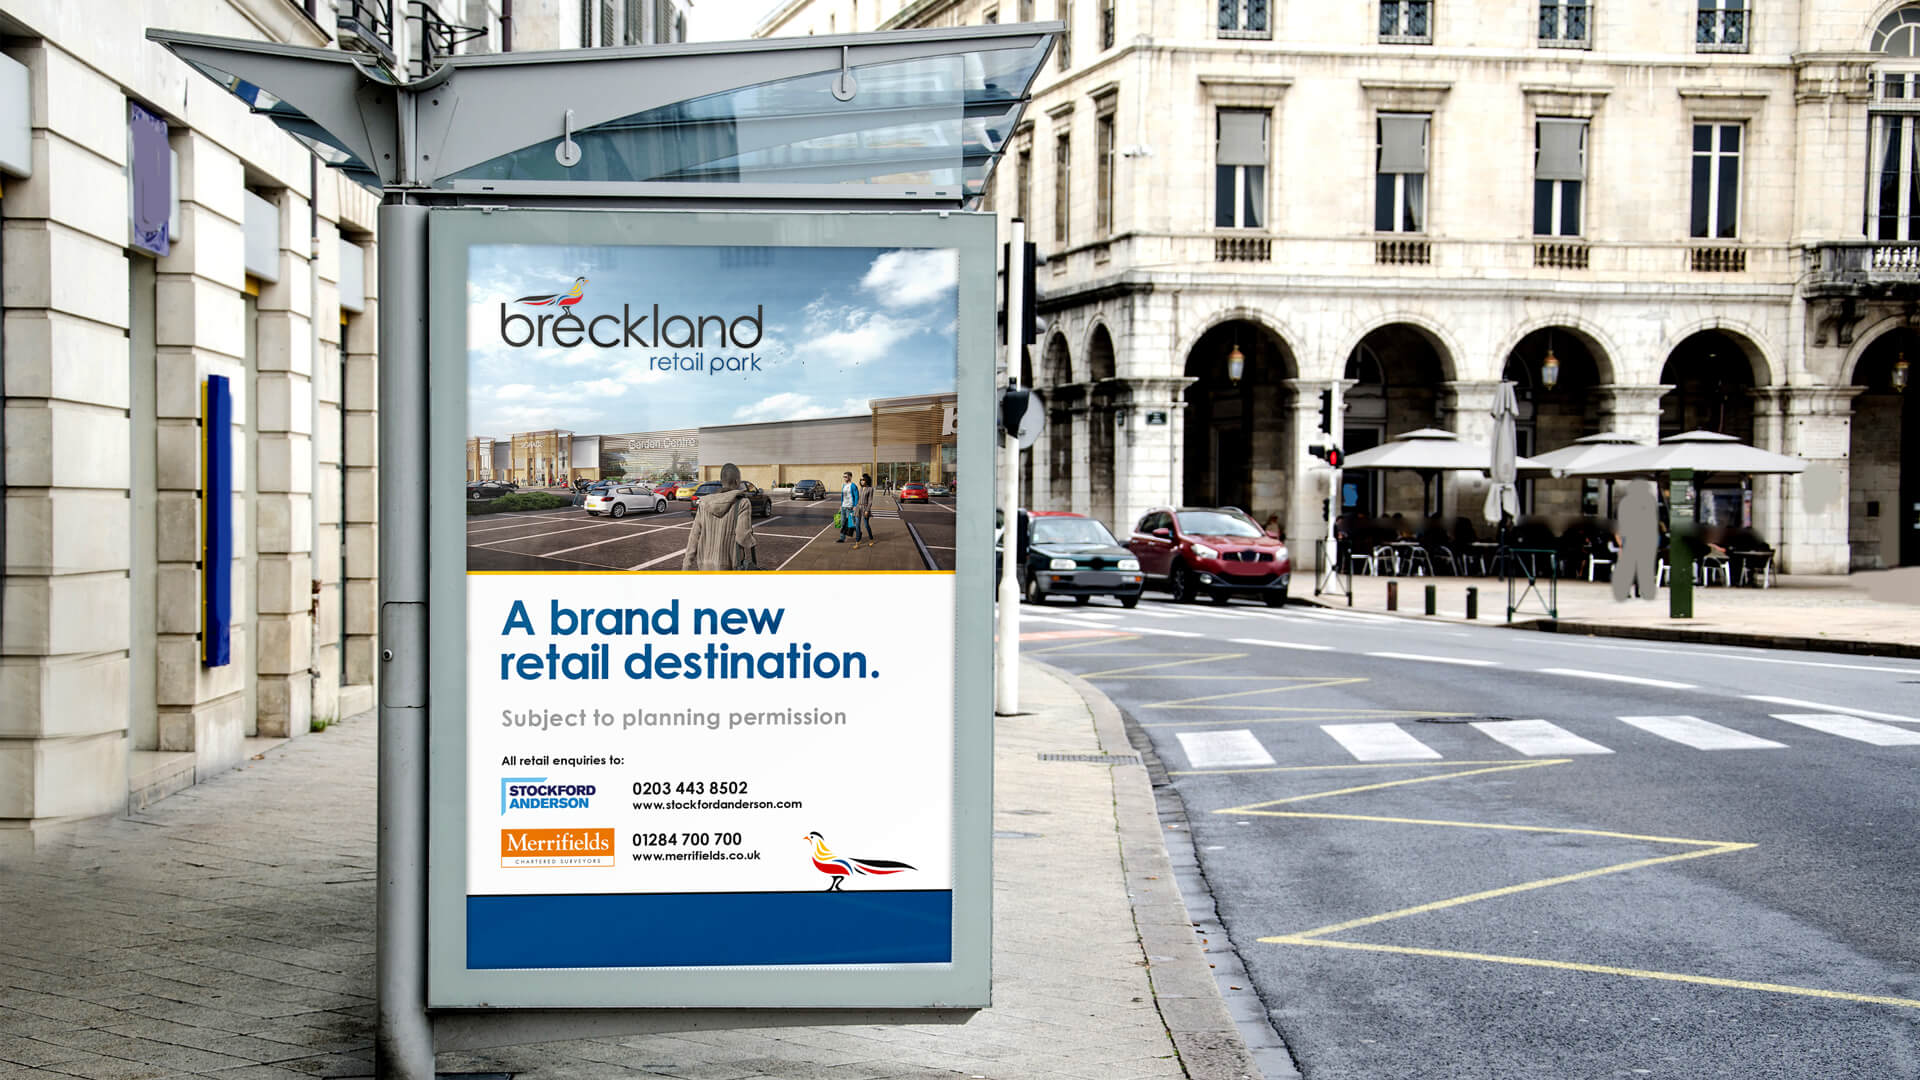 Breckland Retail Park Marketing Brochure